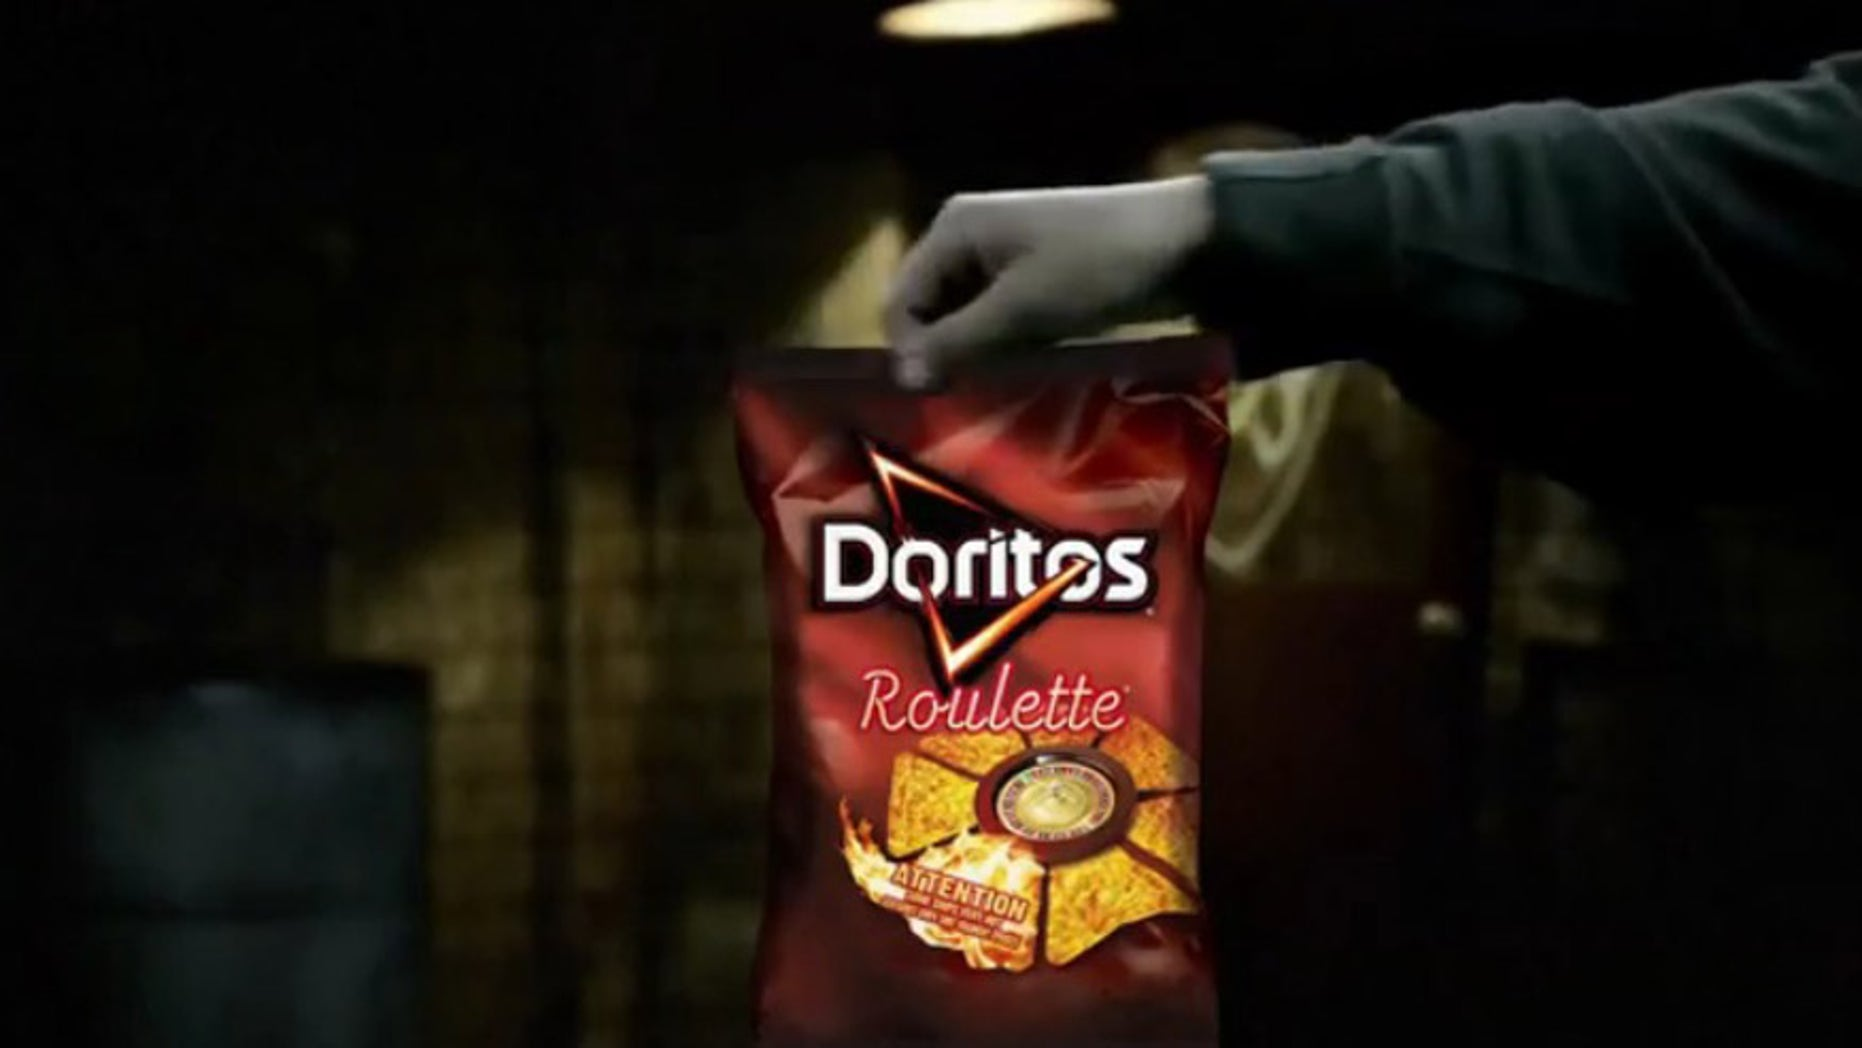 These may be the world's spiciest chips.